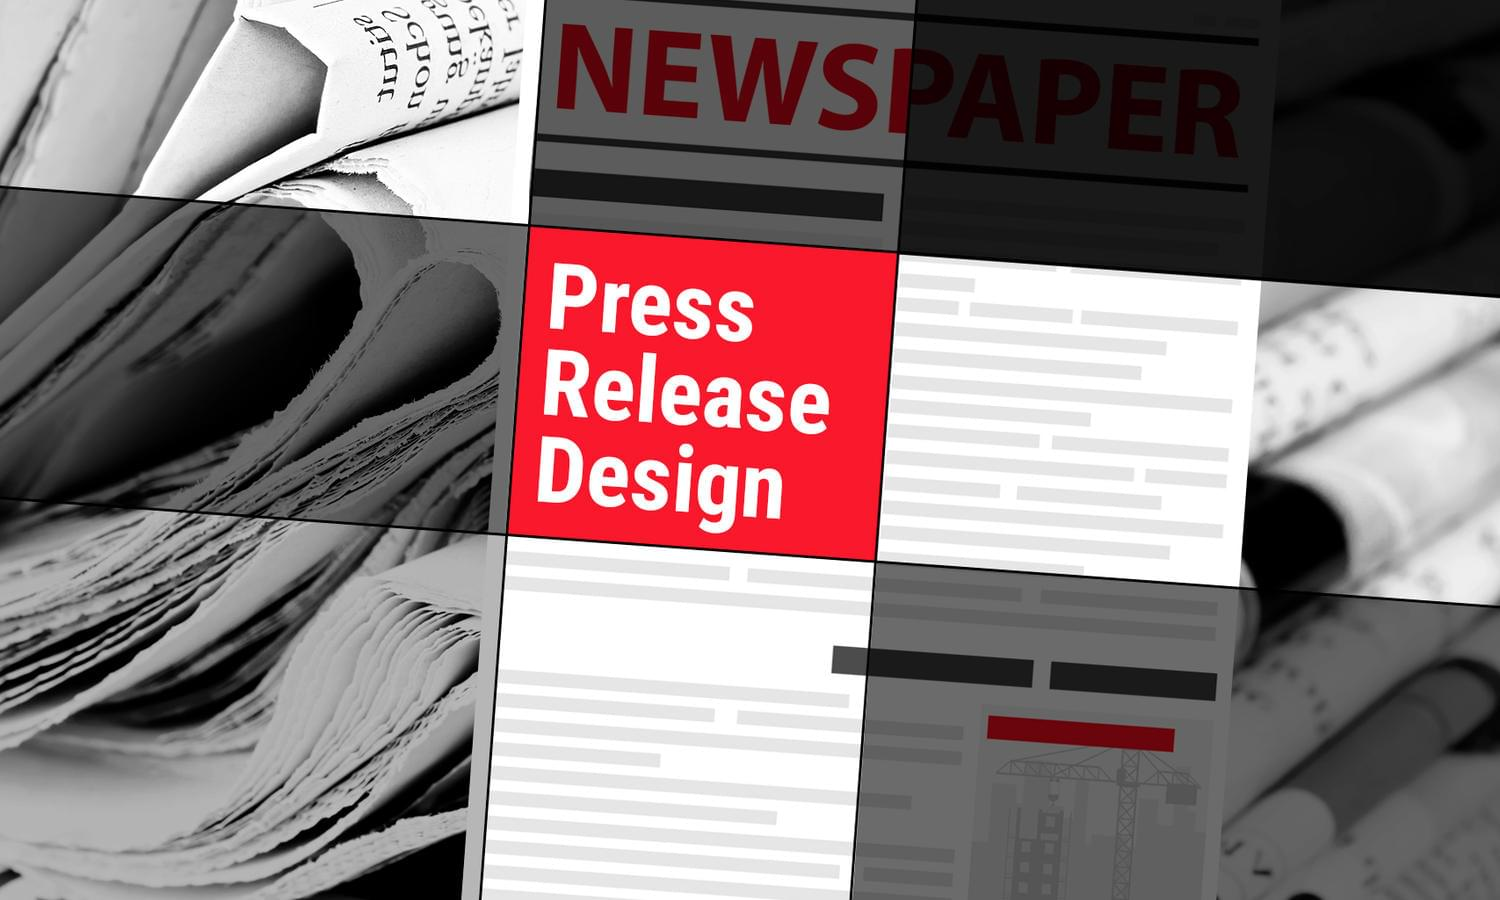 Press Release Design by madridnyc - 111678